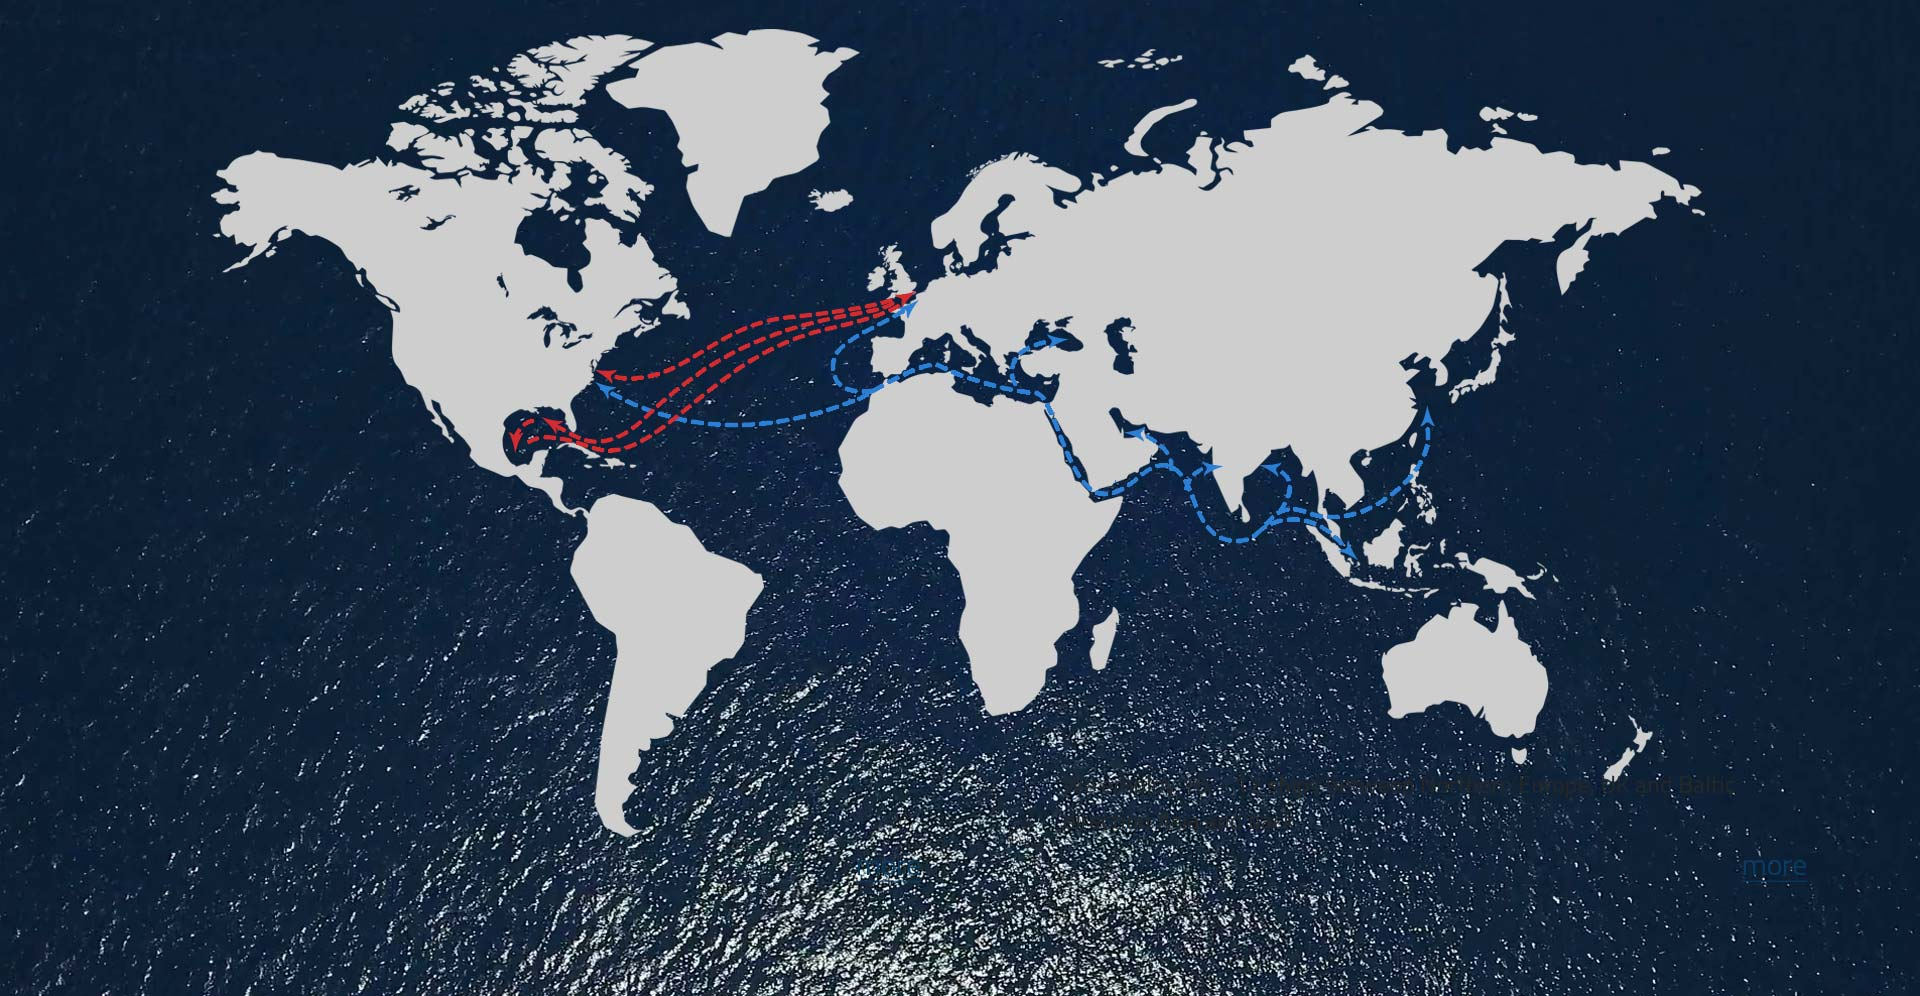 shipping map, ace tankers, chemical tanker, shipping companies, global shipping